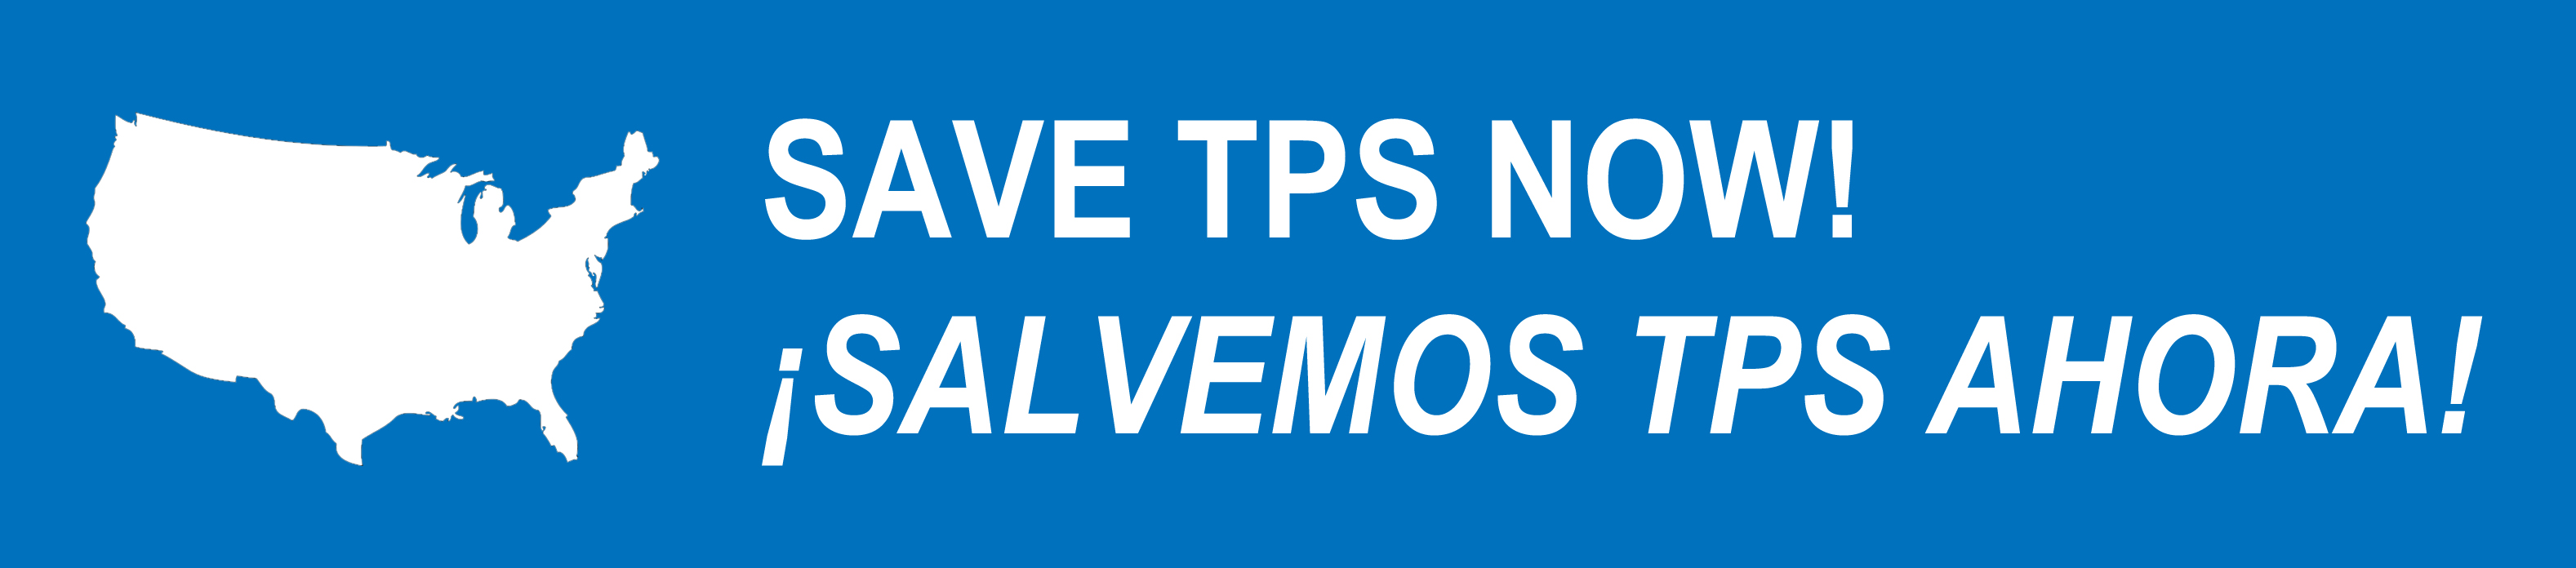 Save_TPS_Web_Header.jpg